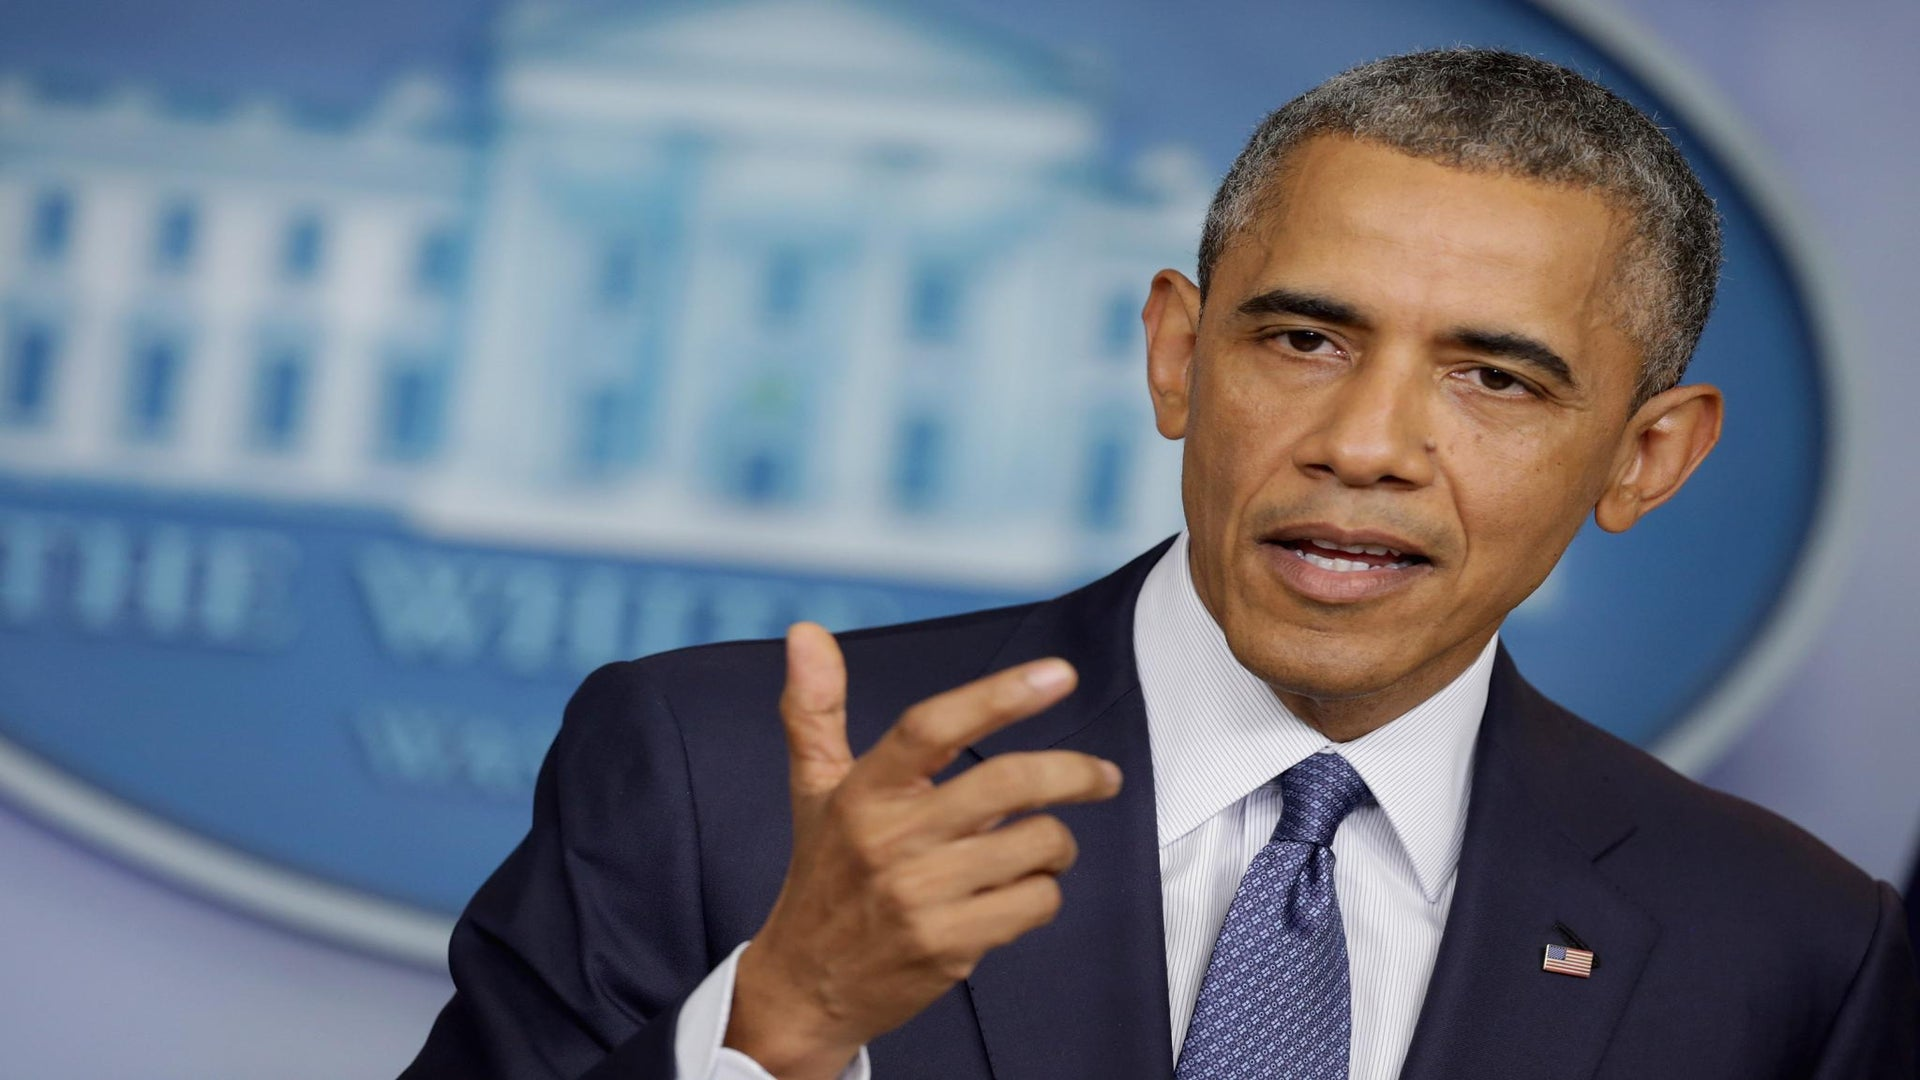 President Obama to Announce Executive Order on 'Ban the Box' Policy